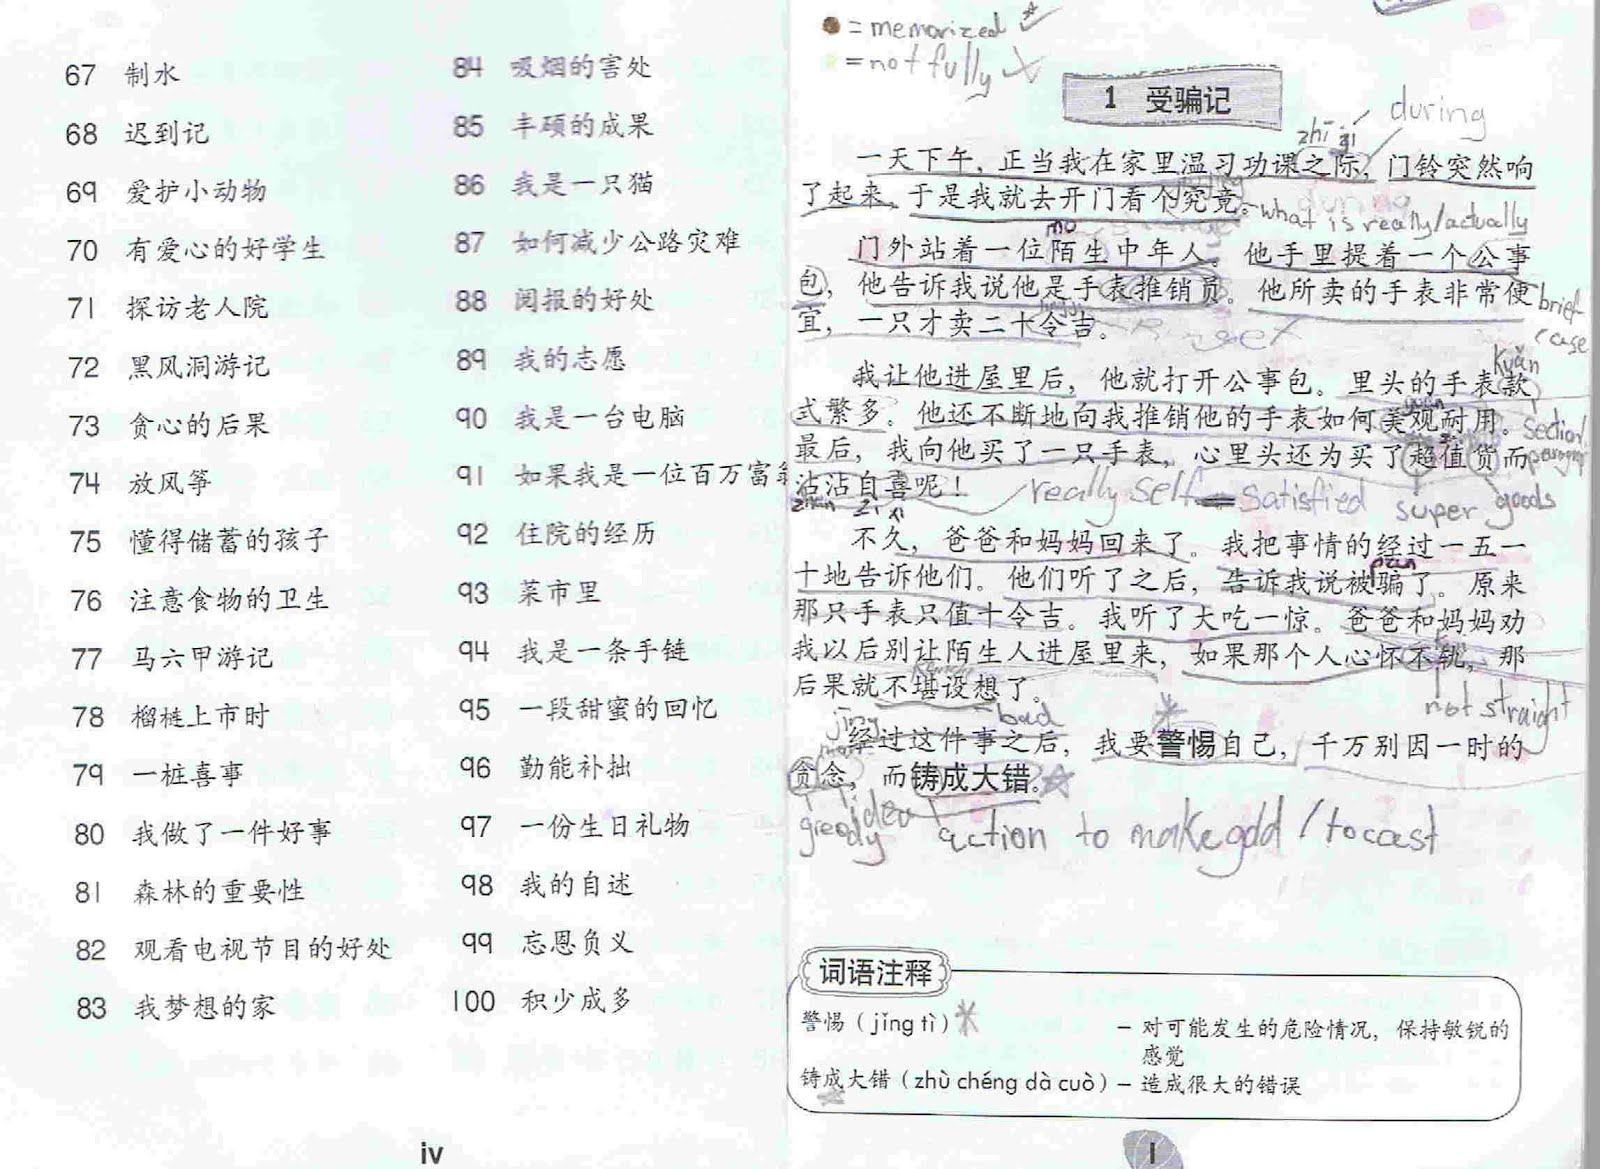 002 Essays On Reading Chinese Essay Sample And Learning Writing Competition Singapore Ccf23082012 00001 New Year Language Service Wedding Paper Structure Amazing Letter Format Topics Full